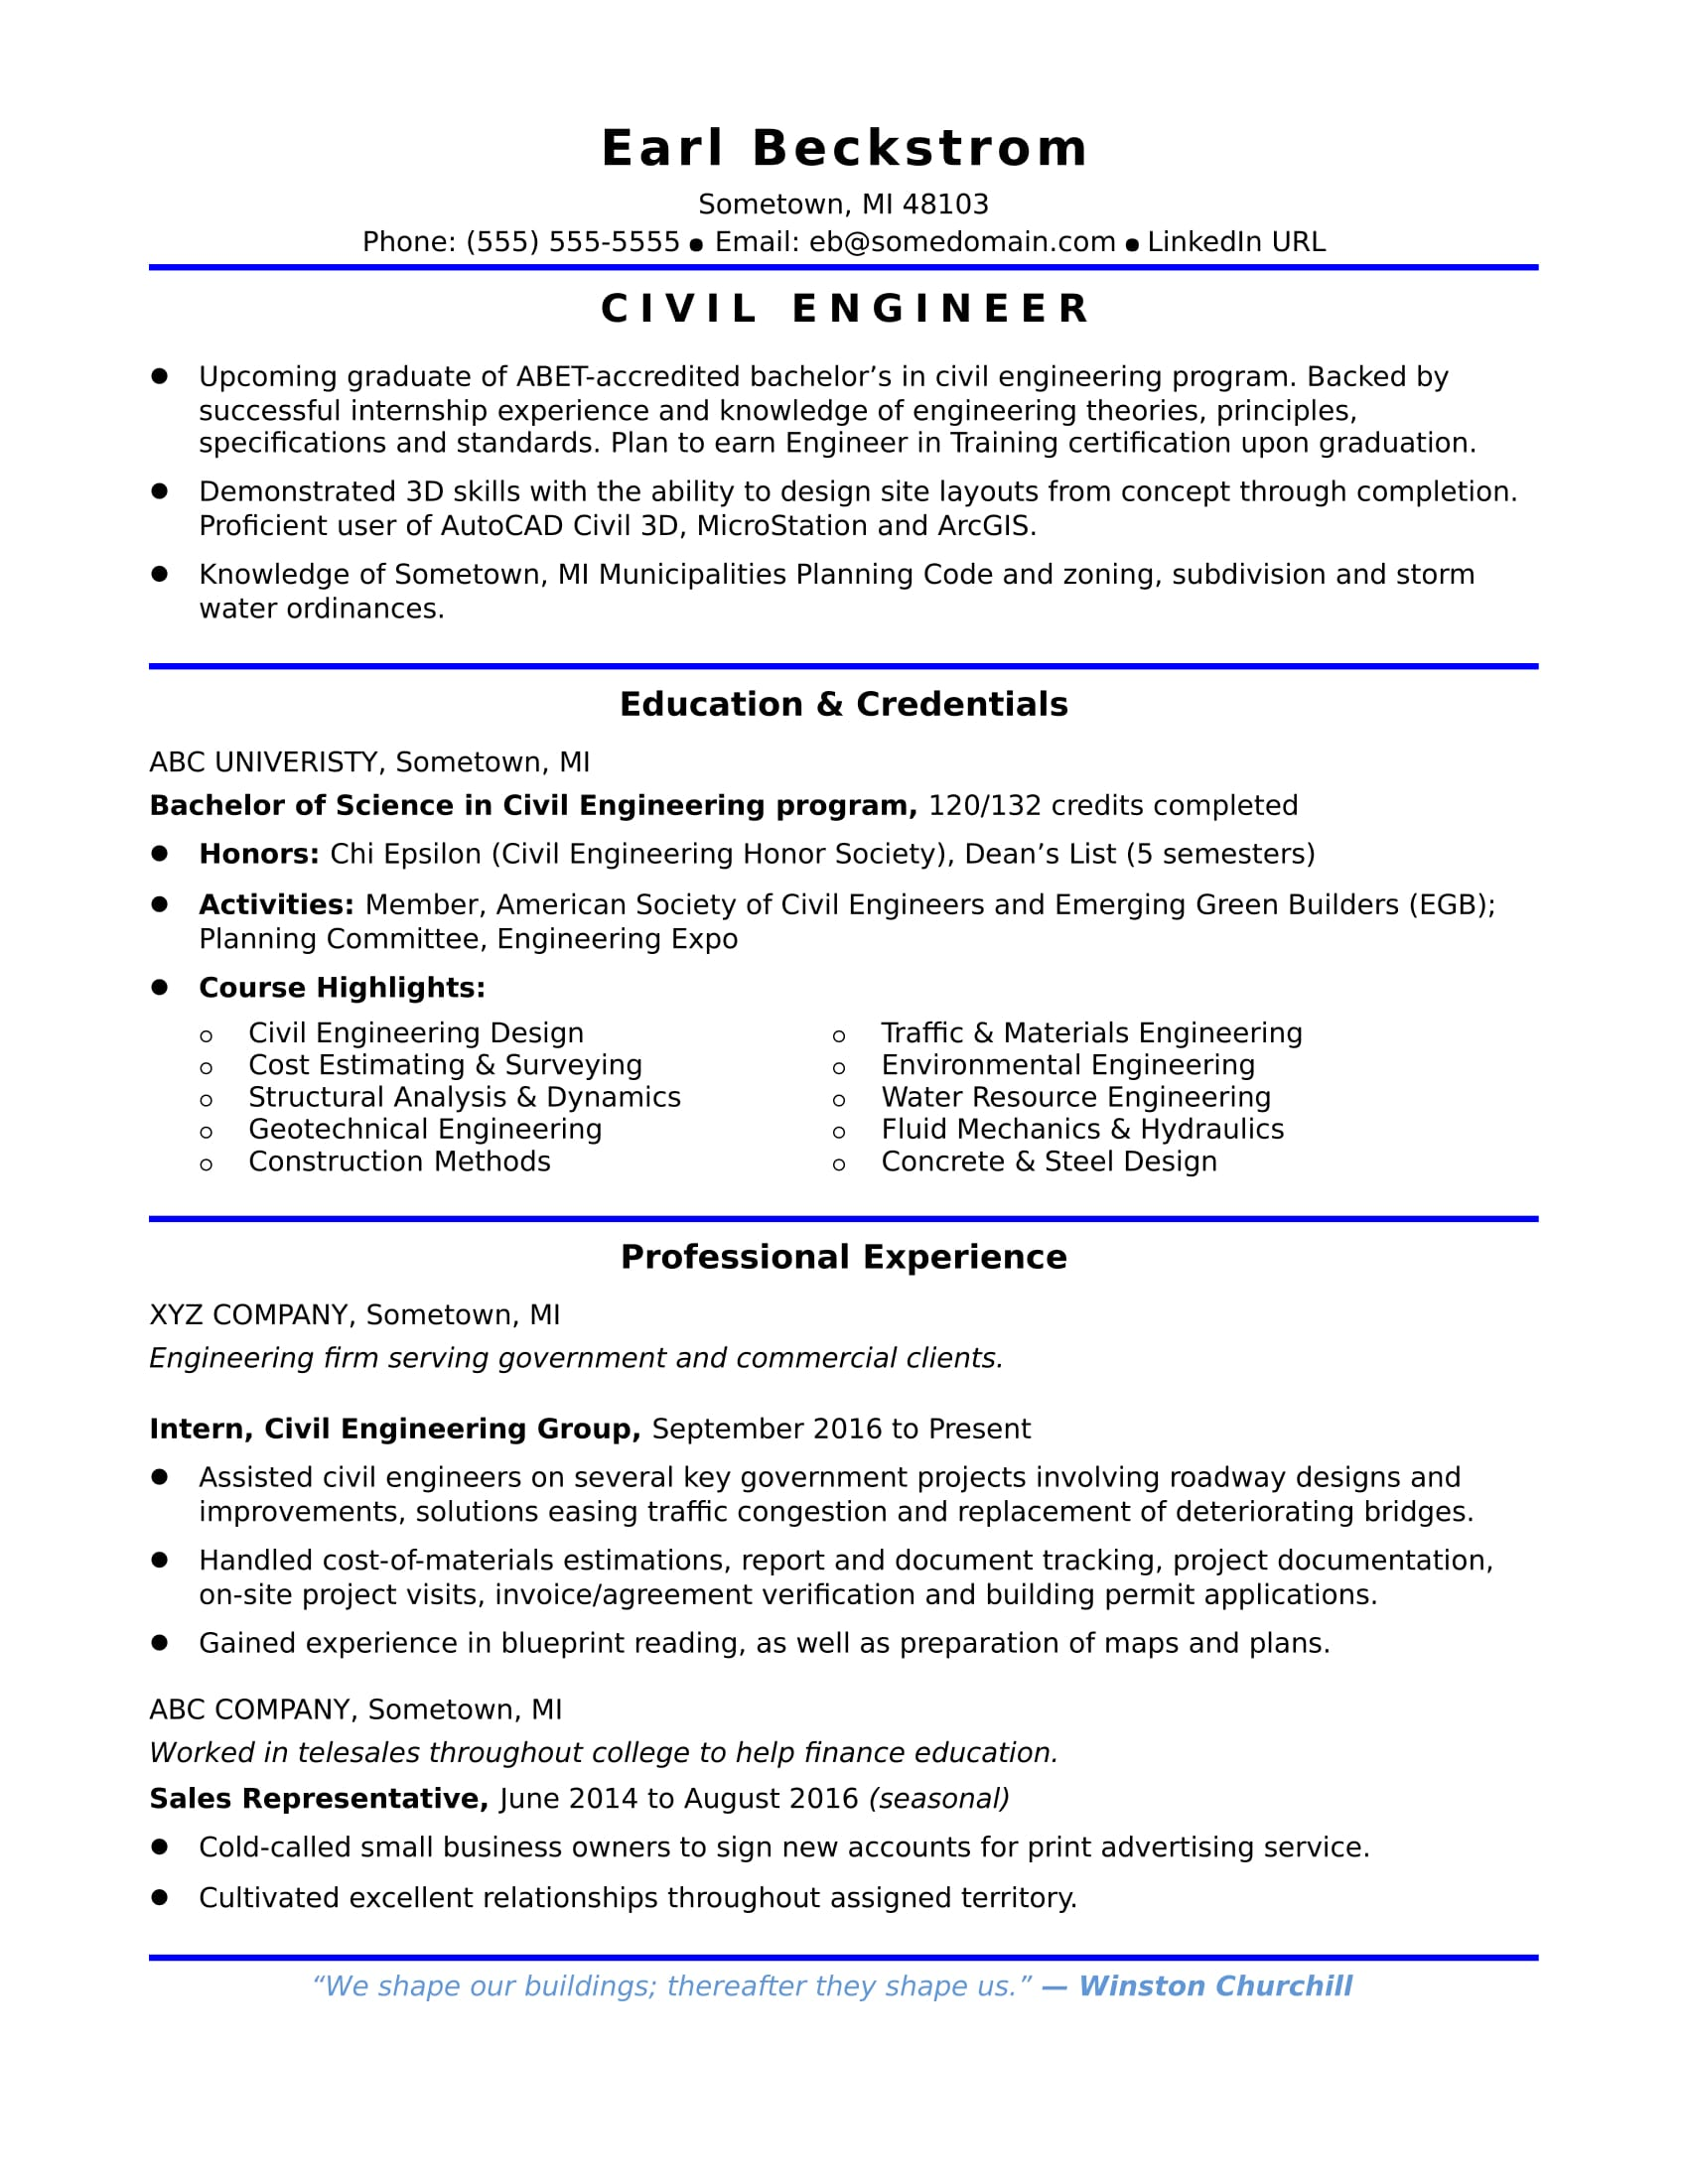 Sample Engineering Resume Best Sample Resume For An EntryLevel Civil Engineer Monster